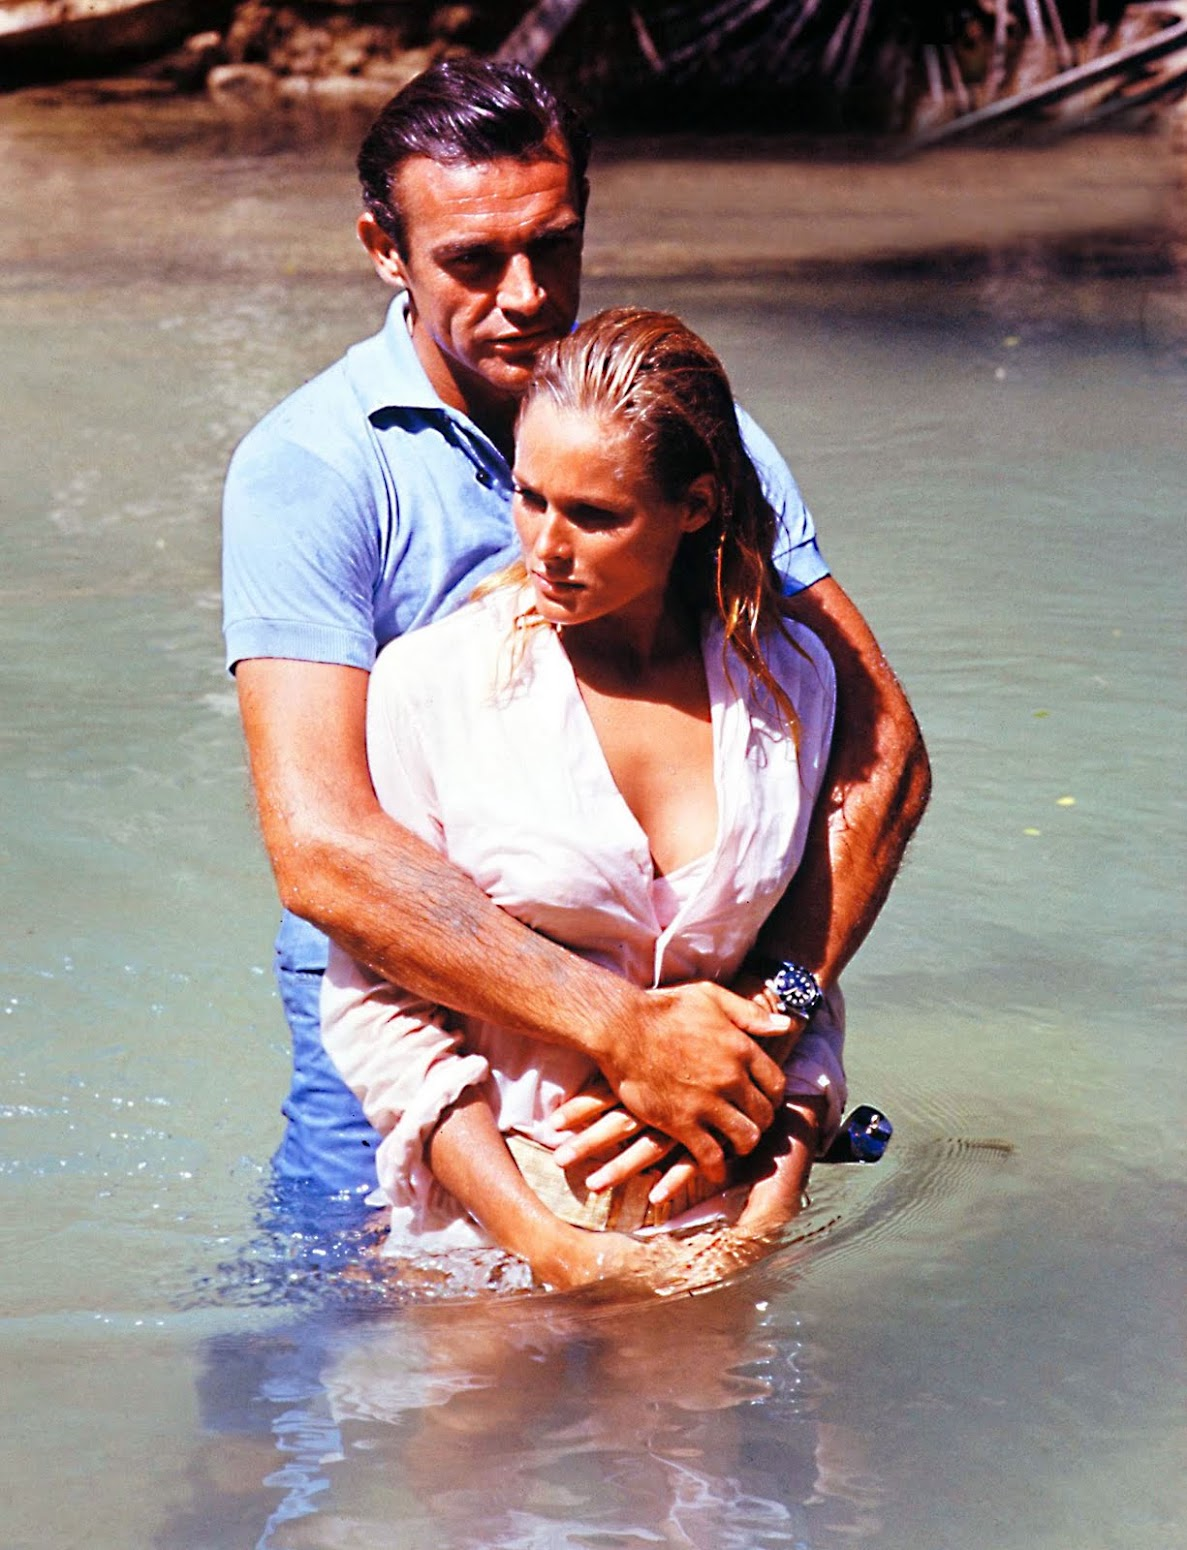 http://3.bp.blogspot.com/-_8pm1pXBw2E/Tg-7PbWcjiI/AAAAAAAAKpw/zAG3g4vPBFs/s1550/Sean-Connery-and-Ursula-Andres-Dr-No-Rolex-Submariner-Big-Crown.jpg